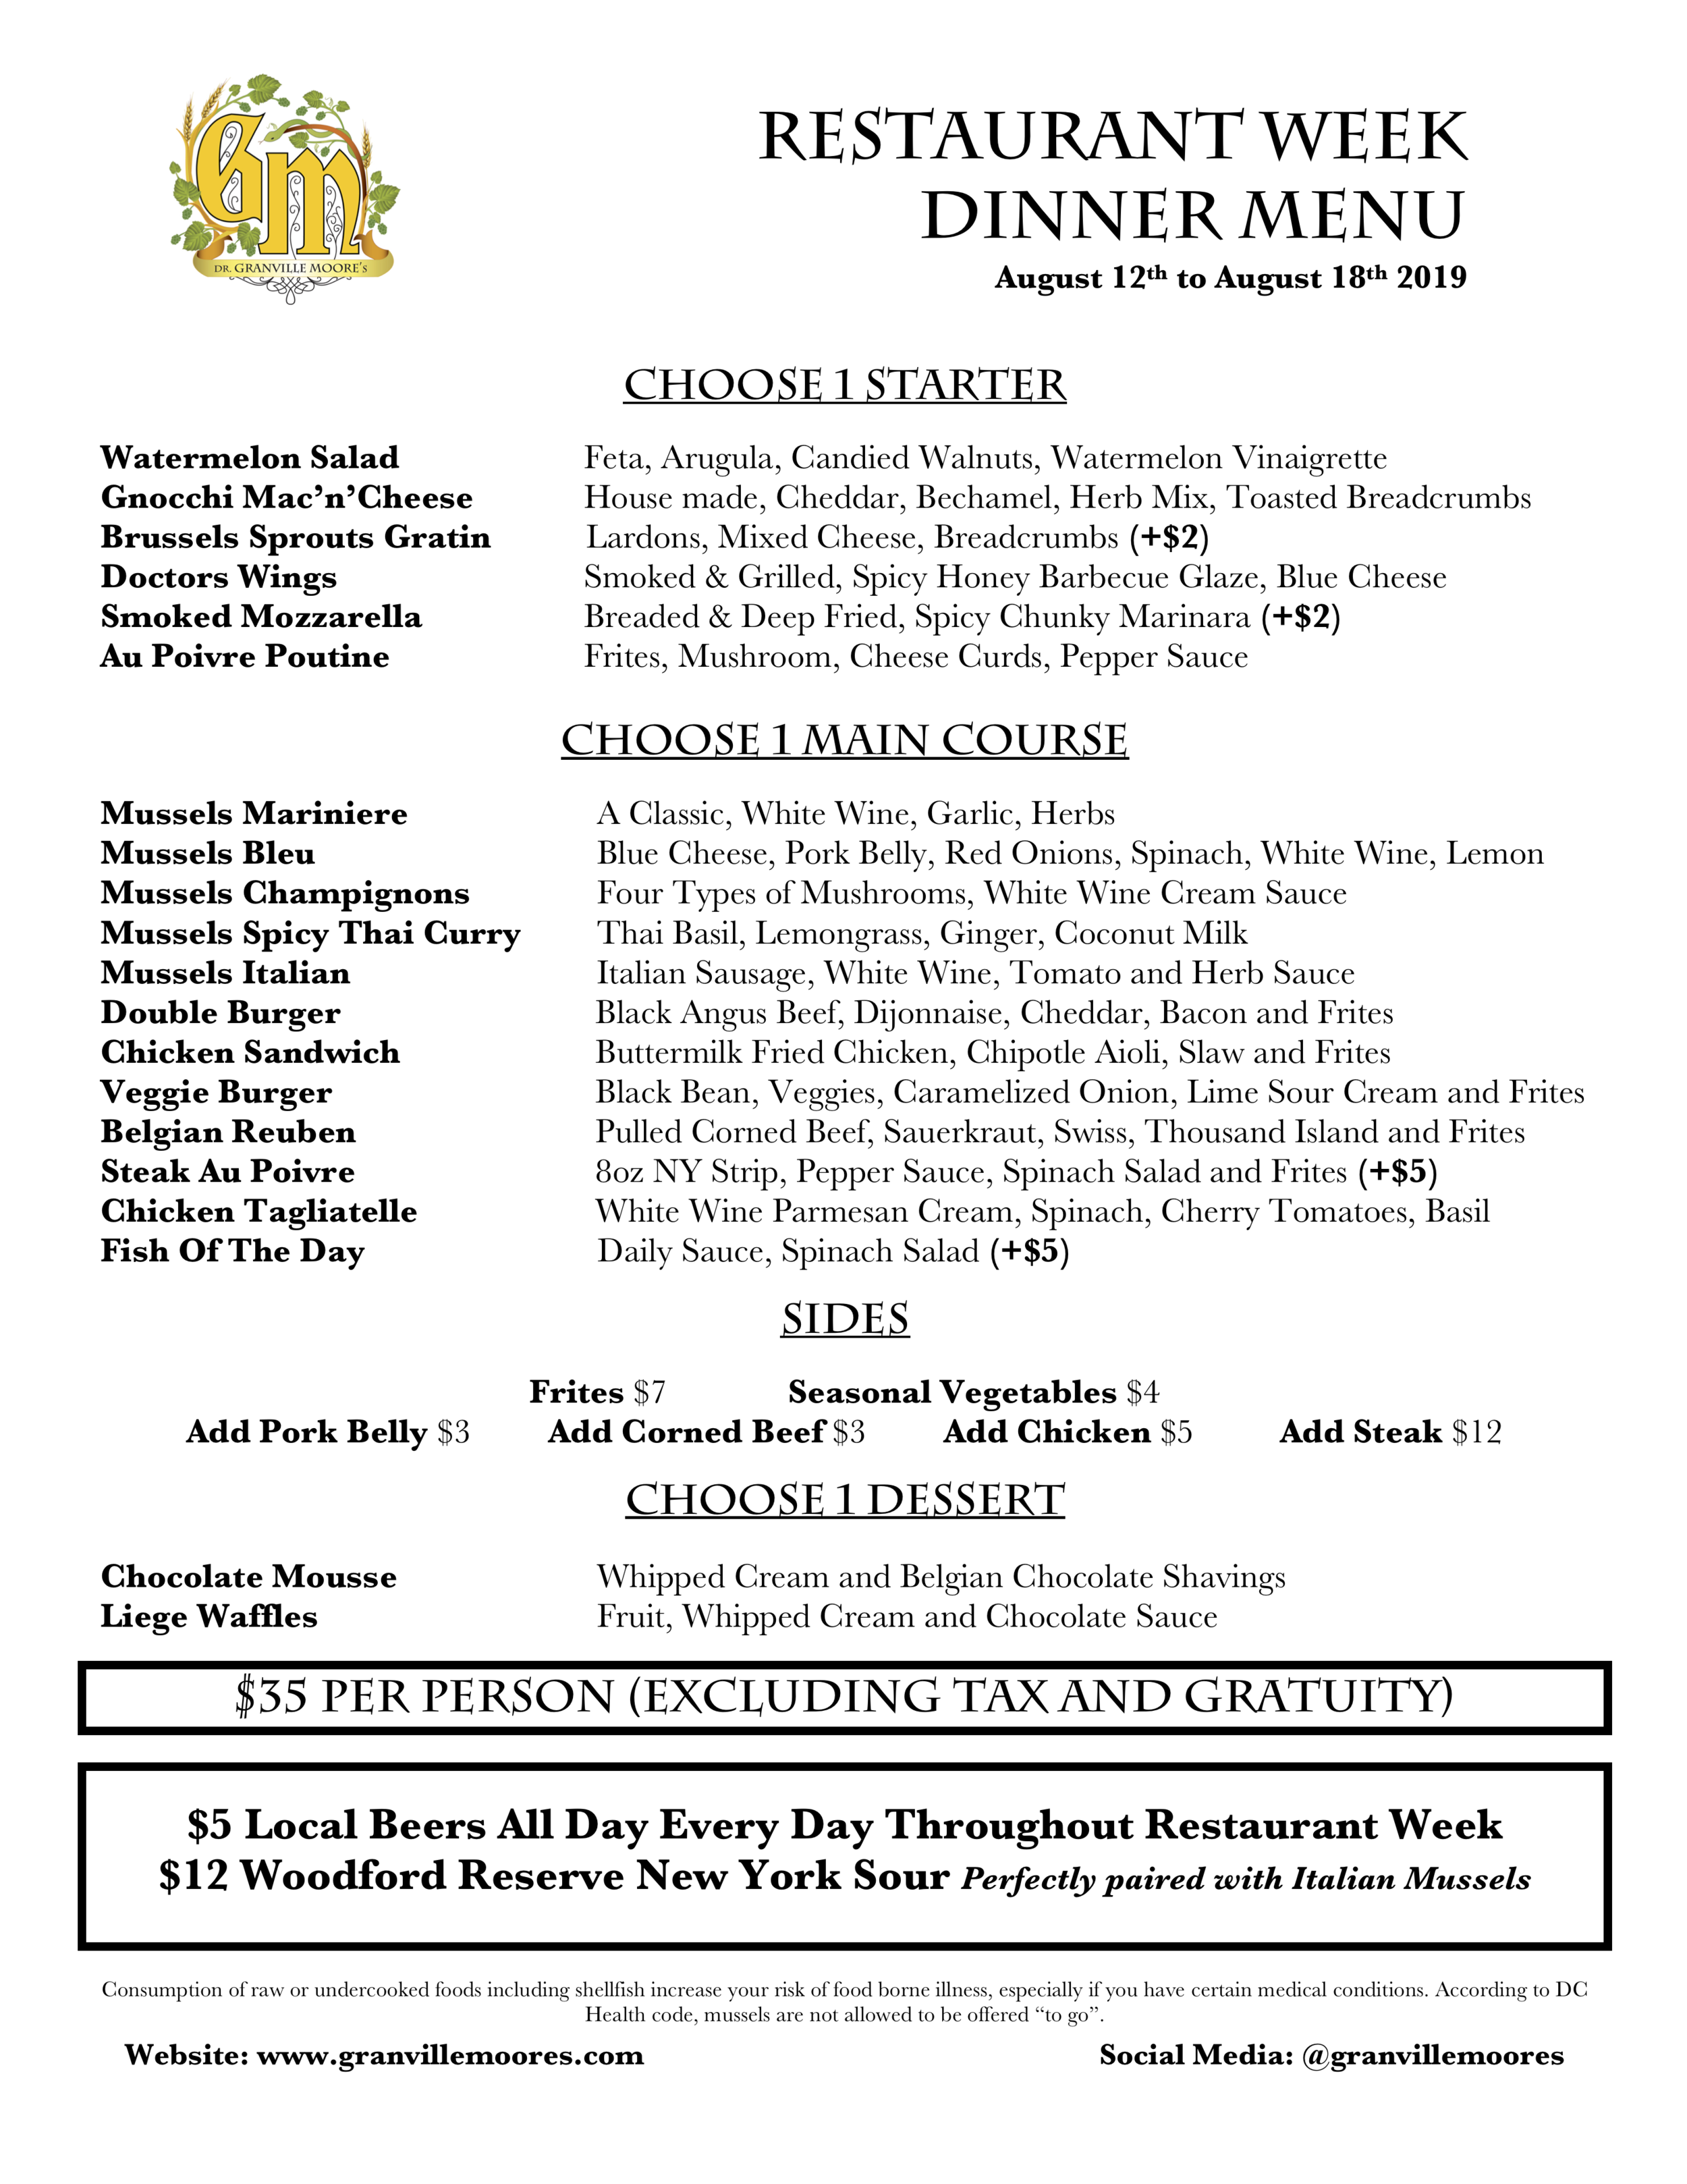 GMs Rest Week Menu 081219.png